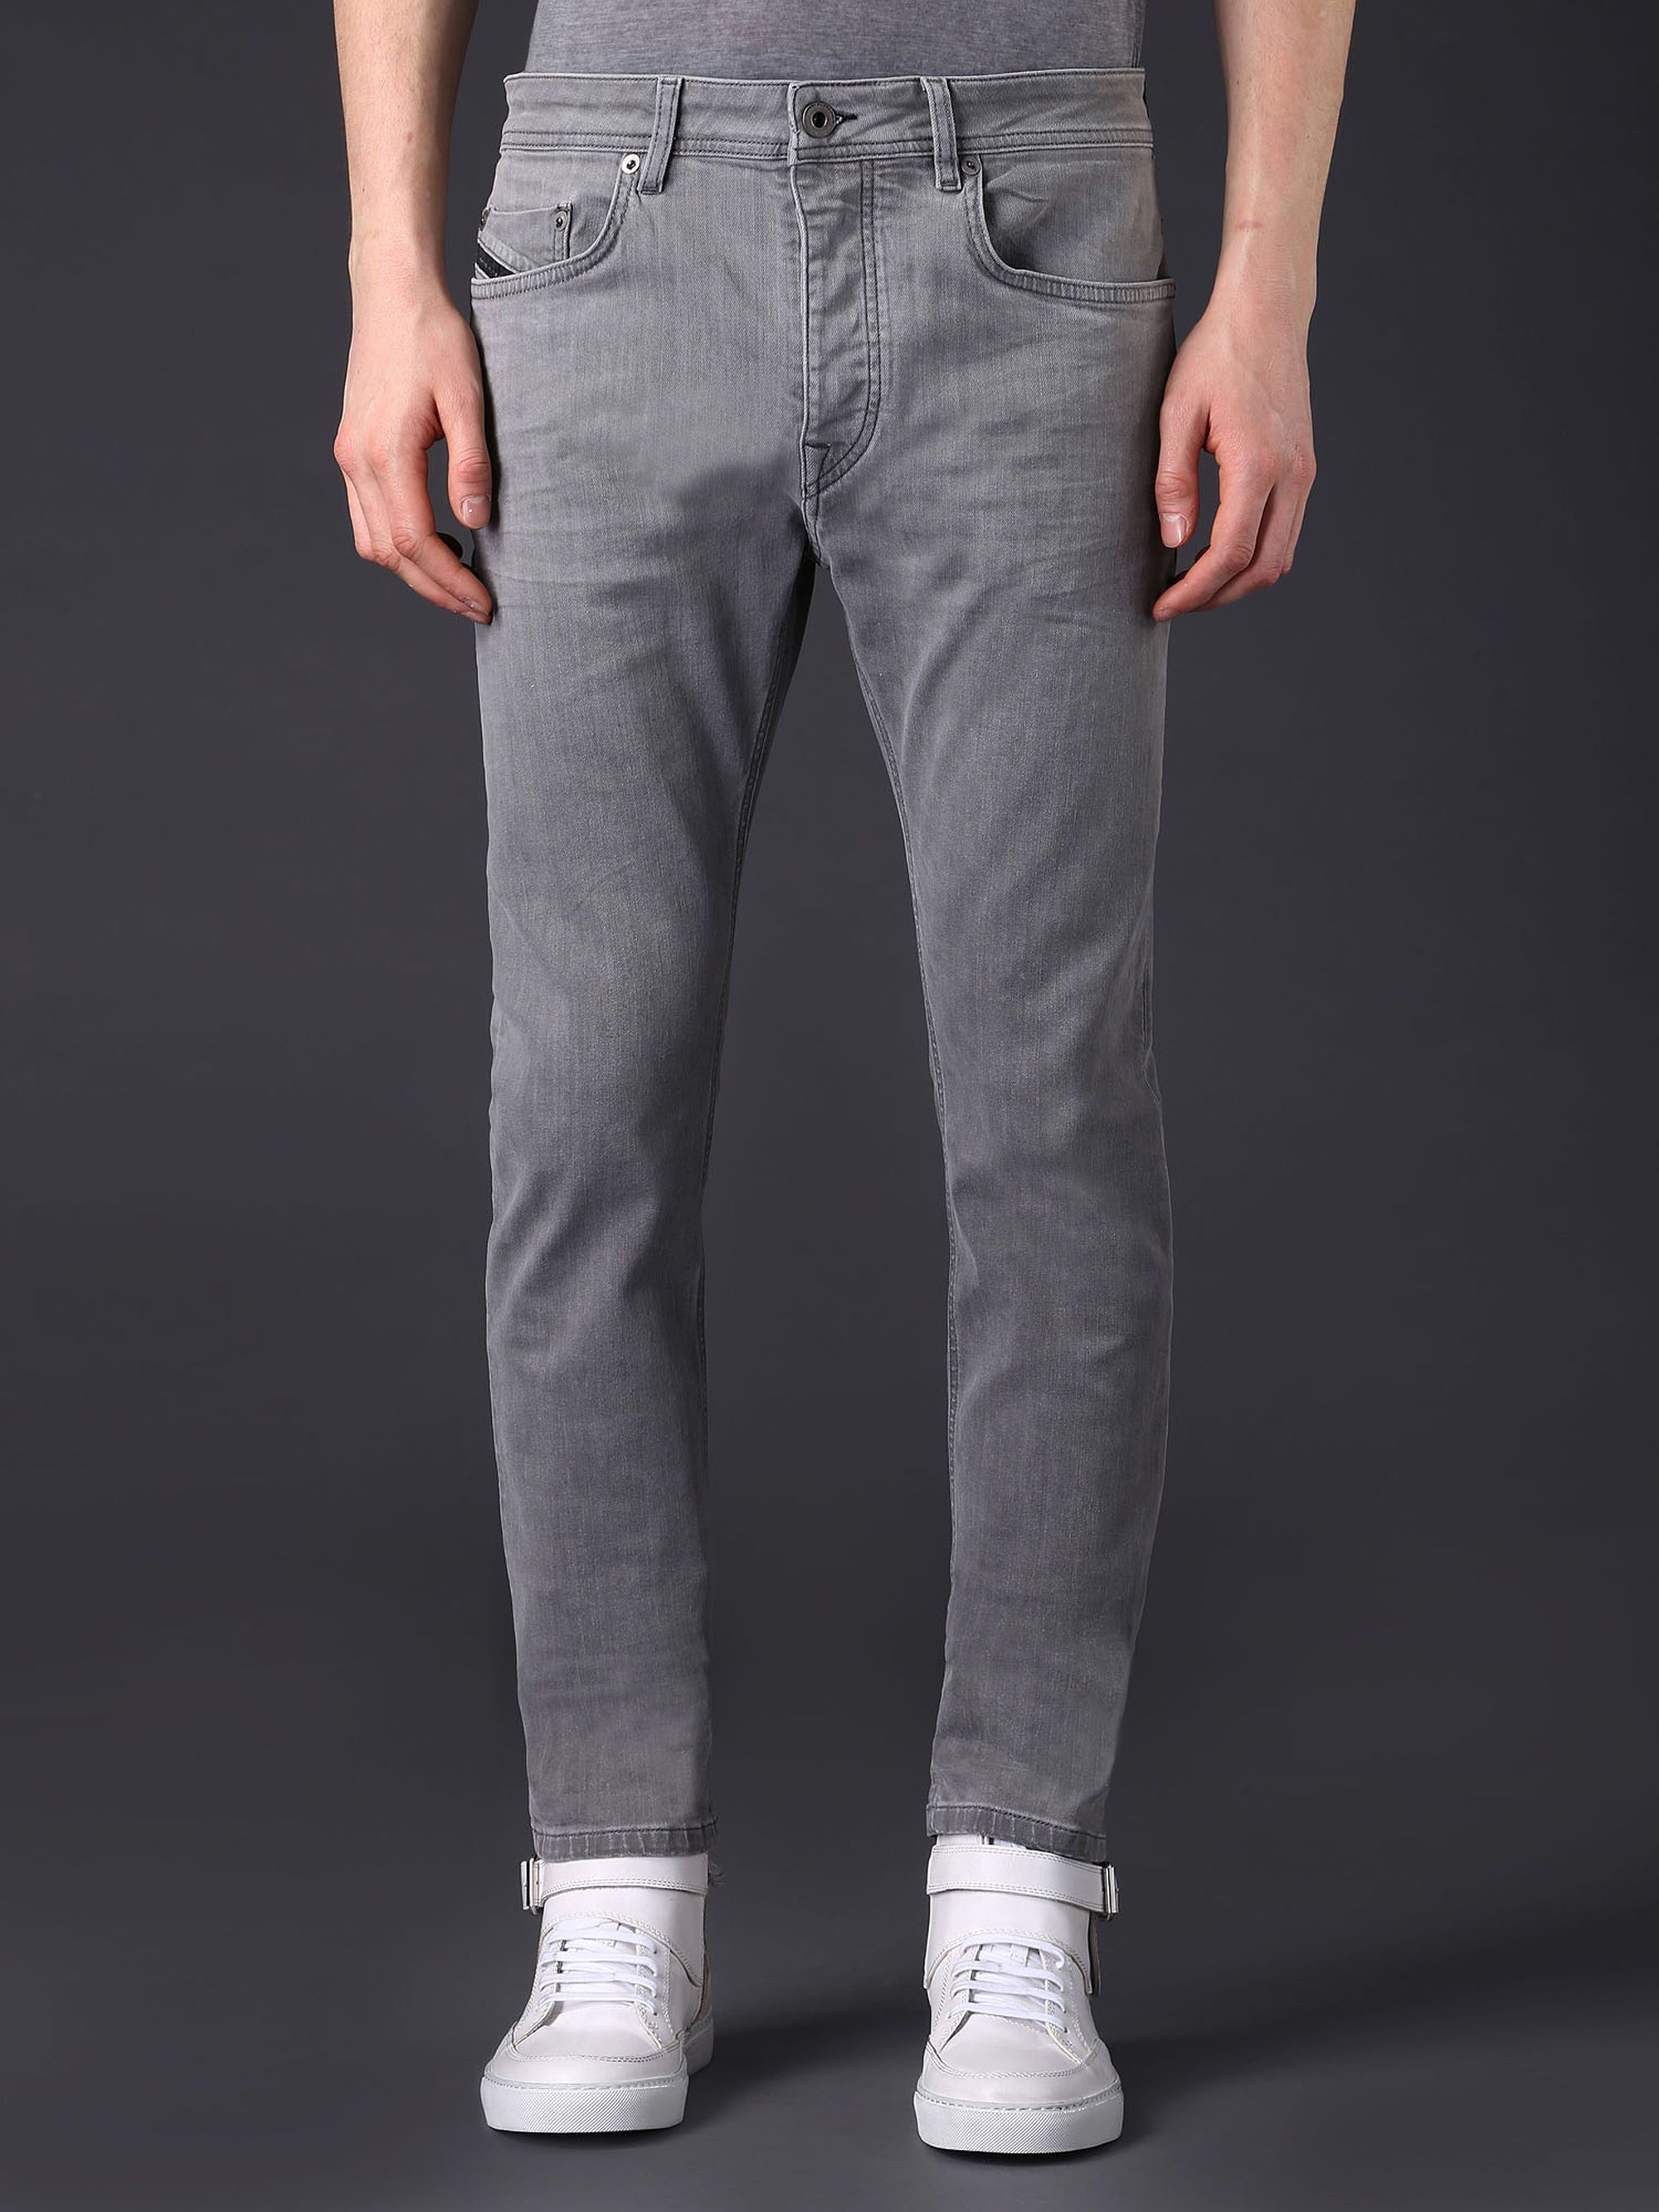 c8d1a19e2b3 Diesel Black Gold TYPE-2512 Stretch Denim Jeans in Grey Jeans from the  Diesel Online Store #DieselBlackGold #TYPE2512 #DieselOnlineStore